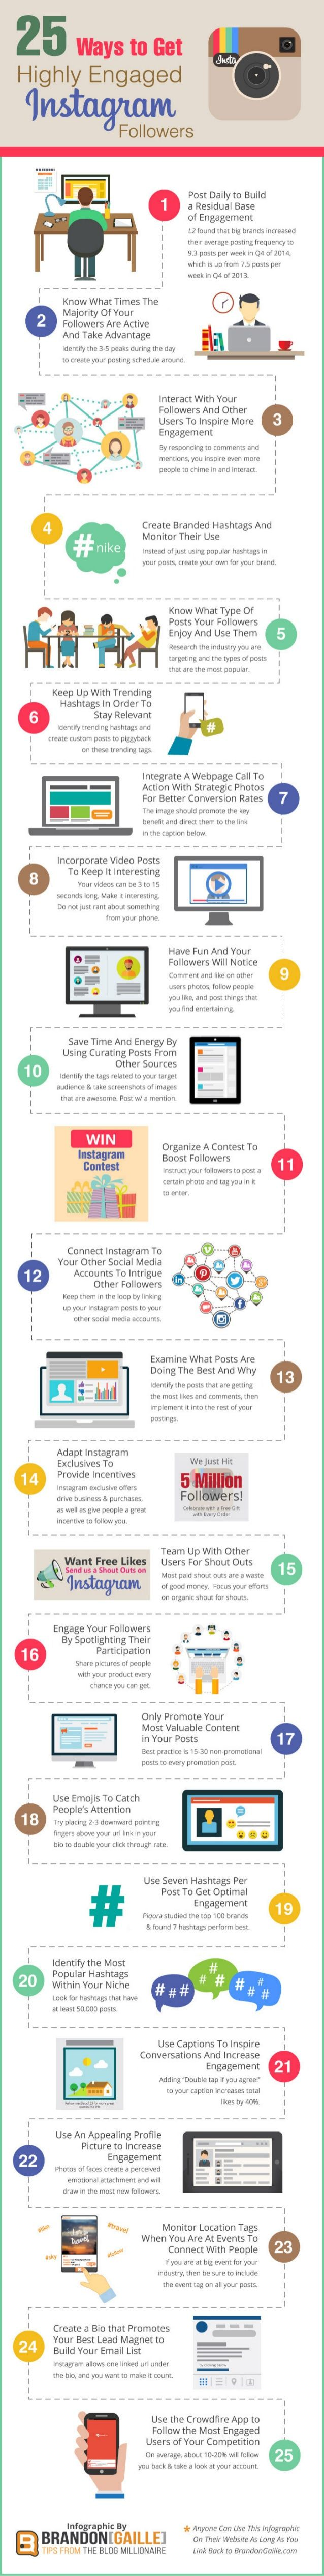 25 Ways The Pros Get Highly Engaged Instagram Followers